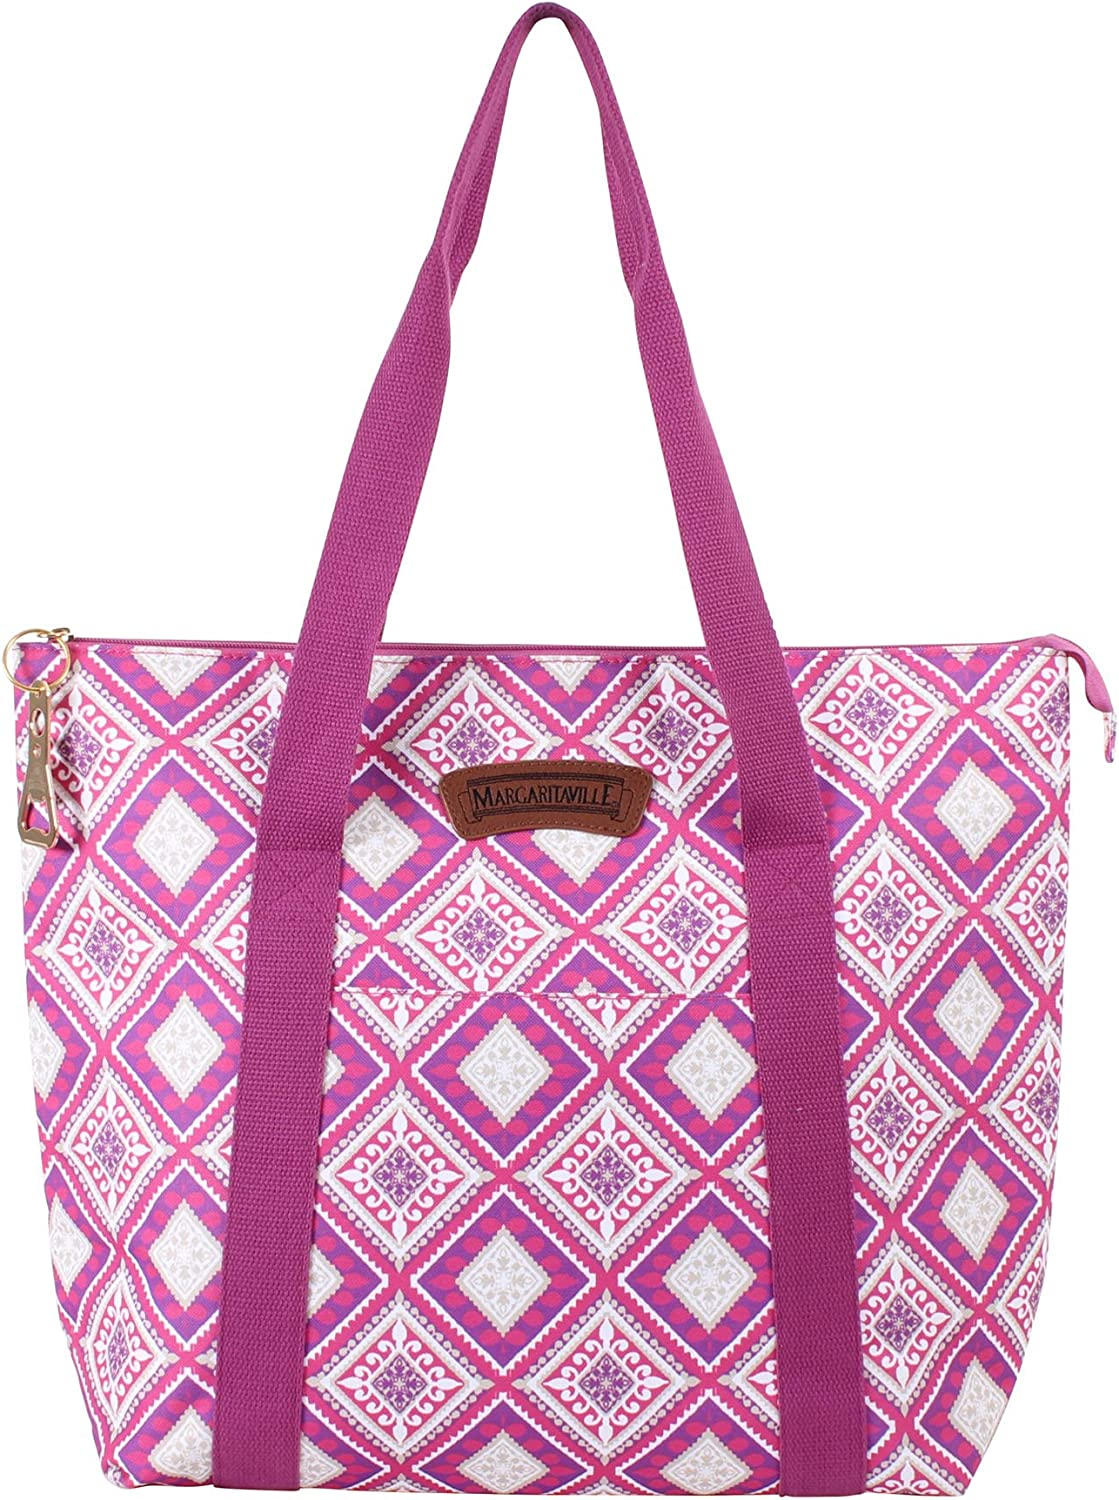 Margaritaville Insulated Large Tote for Women Great for Travel, Food and Drinks (See More Colors and Designs)